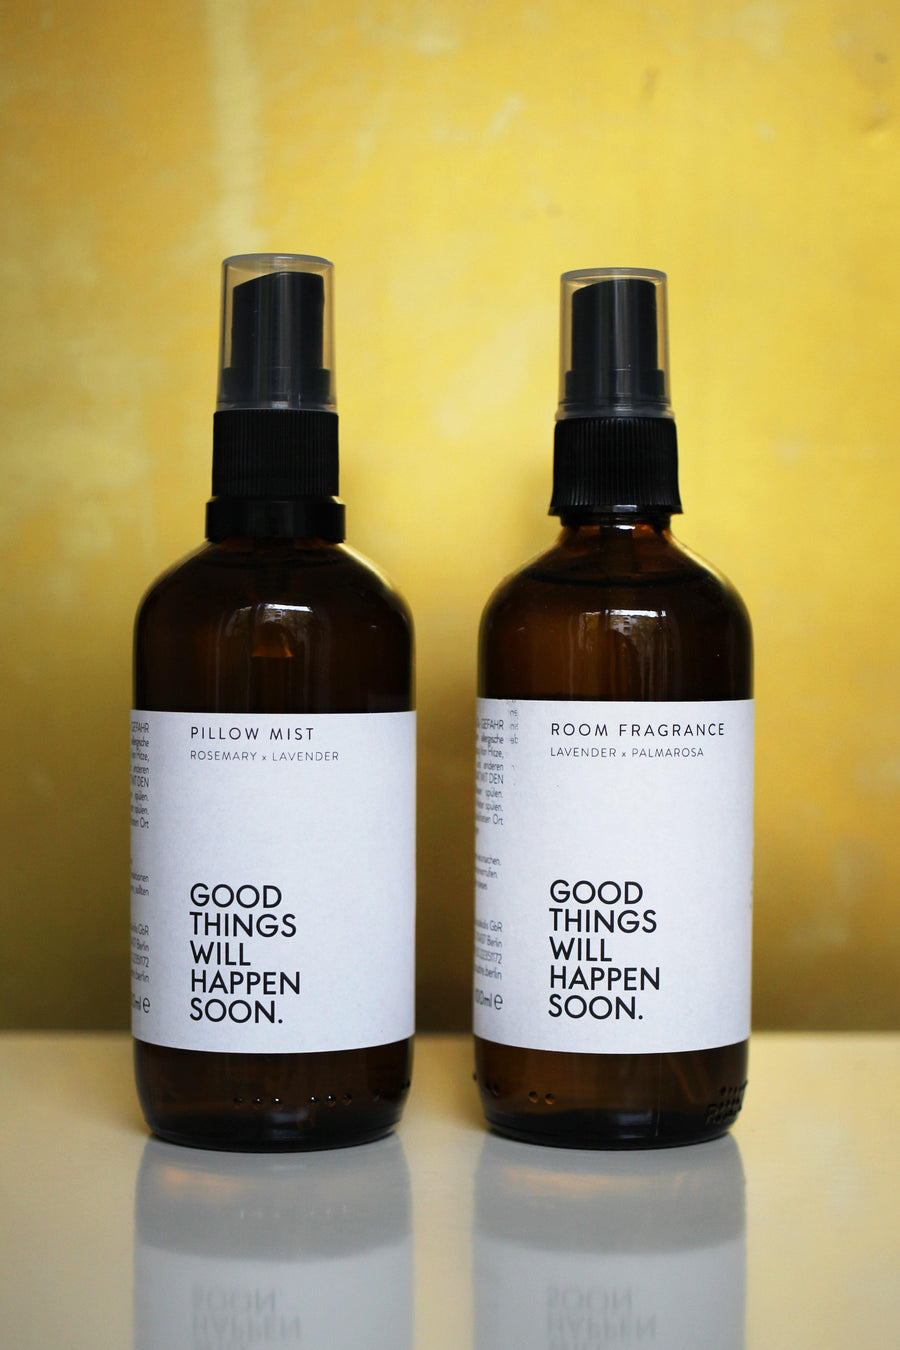 Good Things Will Happen Soon x Coudre Berlin Pillow Mist - The Good Store Berlin